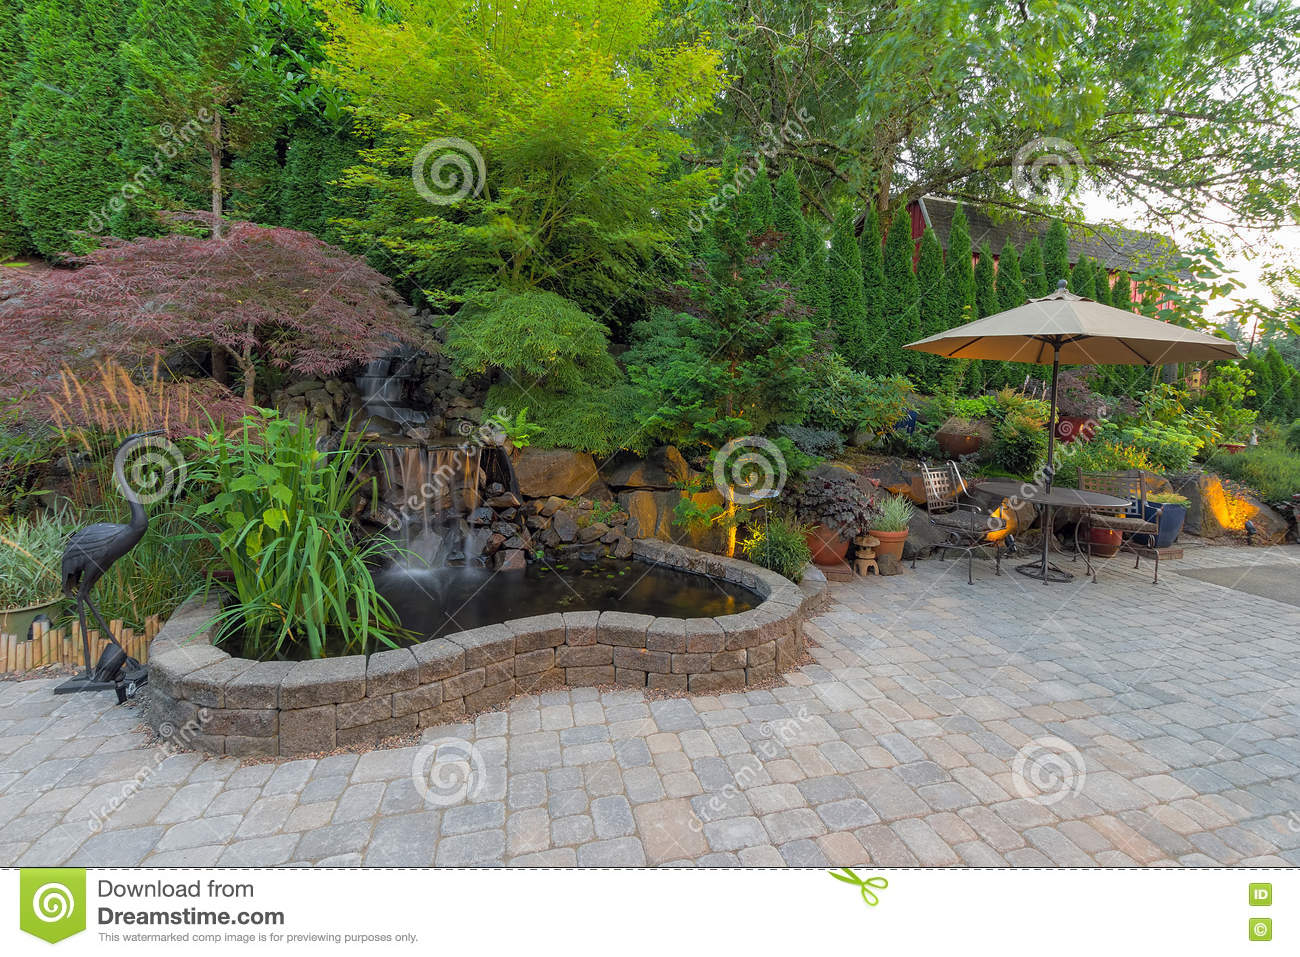 Backyard landscaping patio with waterfall pond stock photo for Garden pond design software free download